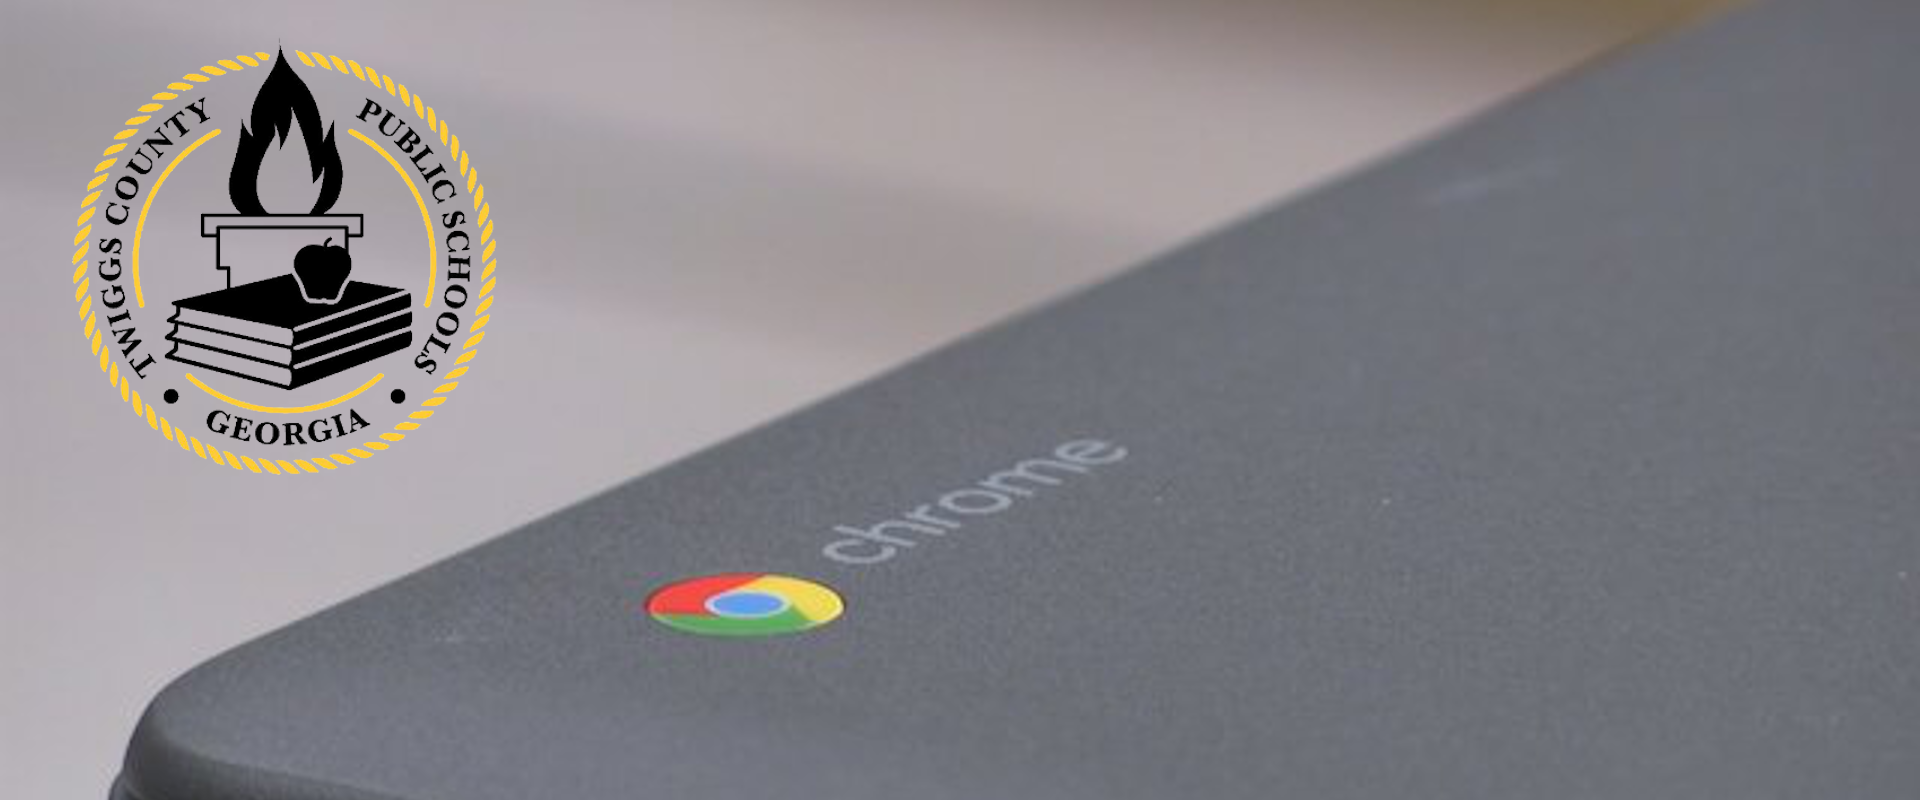 Chromebook Loan